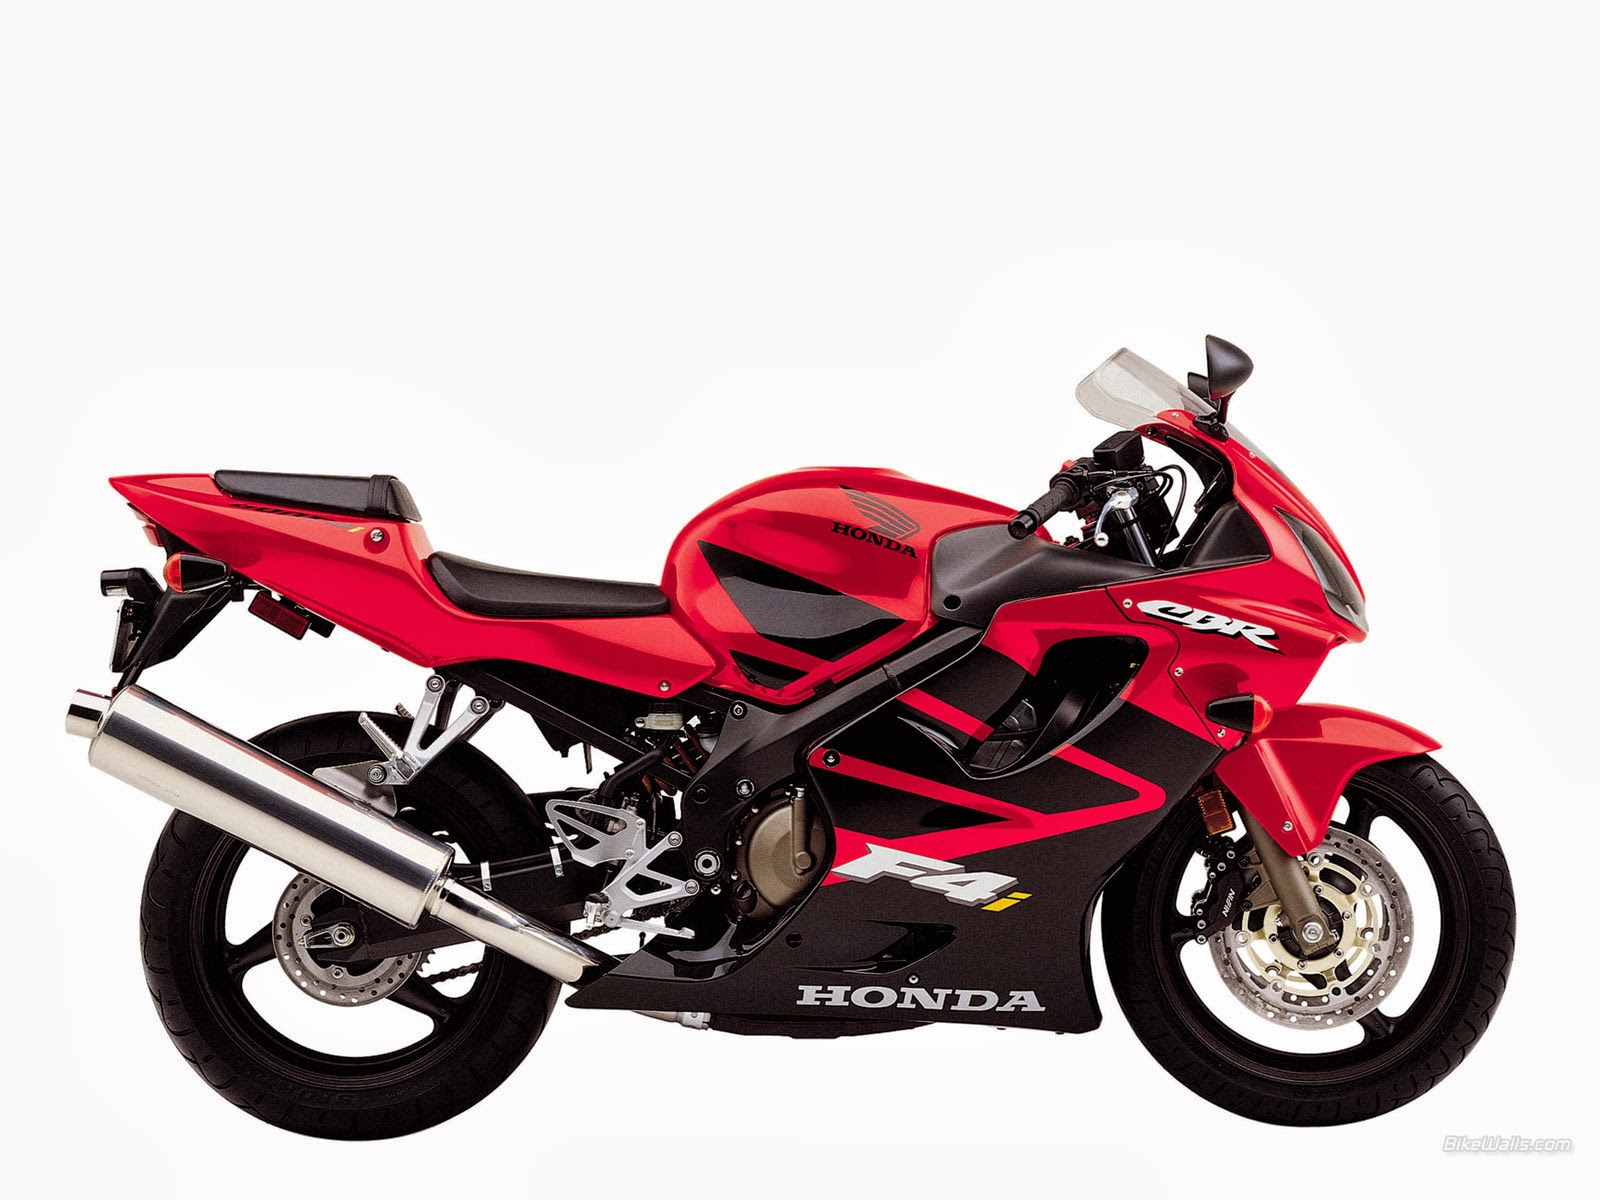 Honda CBR 600 F4I - Honda Motor Honda CBR 600 F4i 2001-2003 Service Repair  Manual Download. This PDF contains all the necessary instructions needed  for any ...